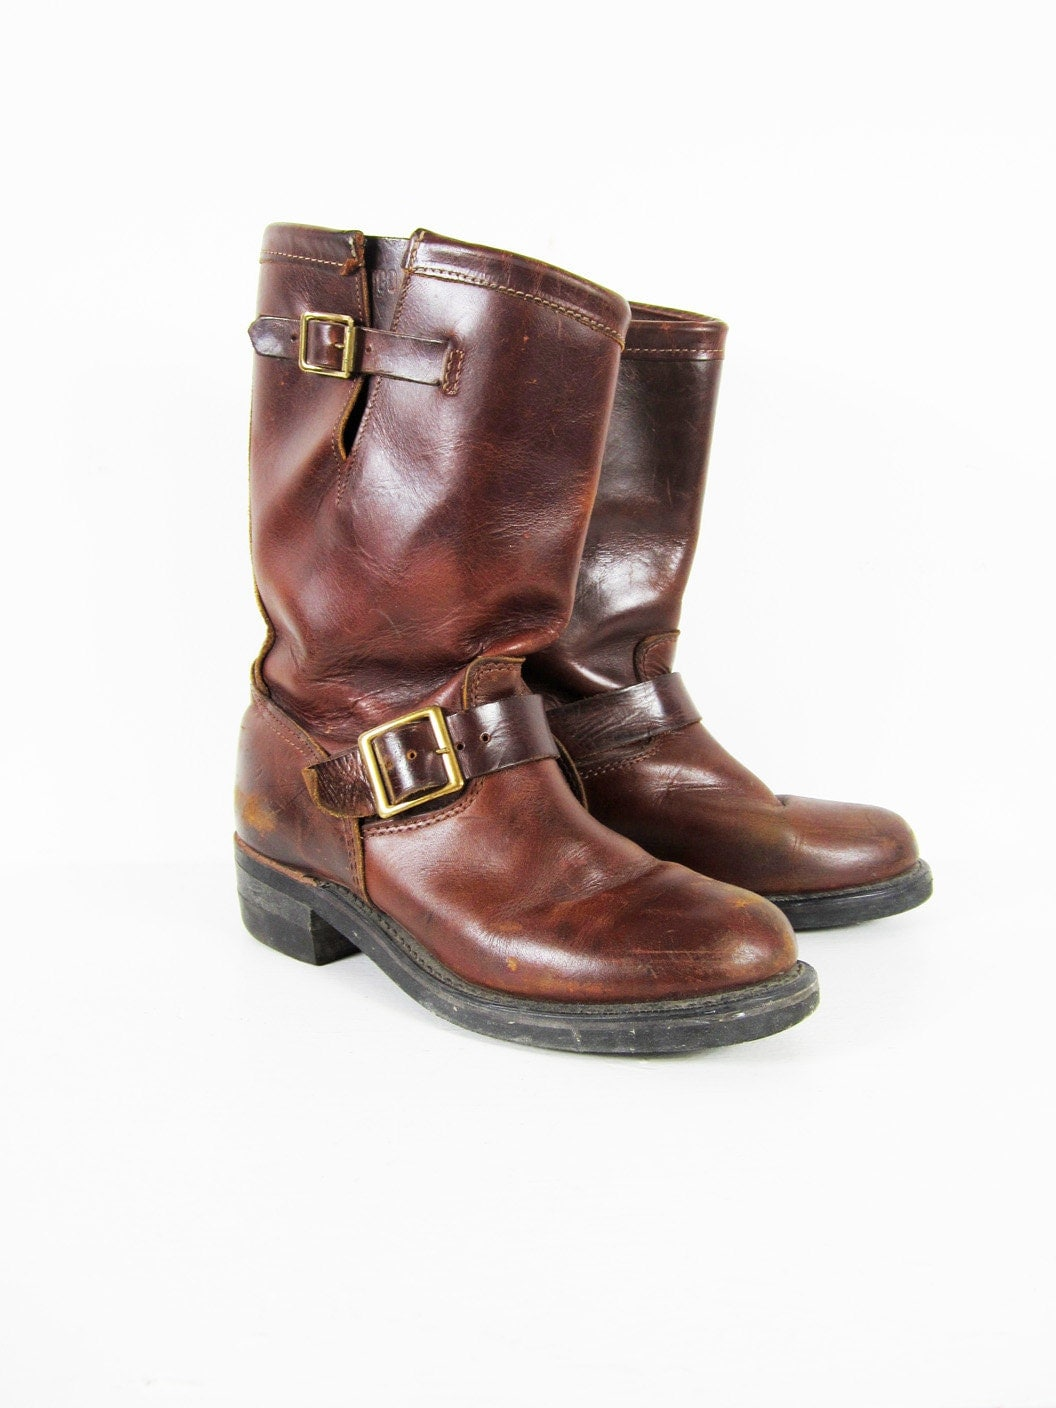 vintage 60s brown engineer boots durango leather buckle